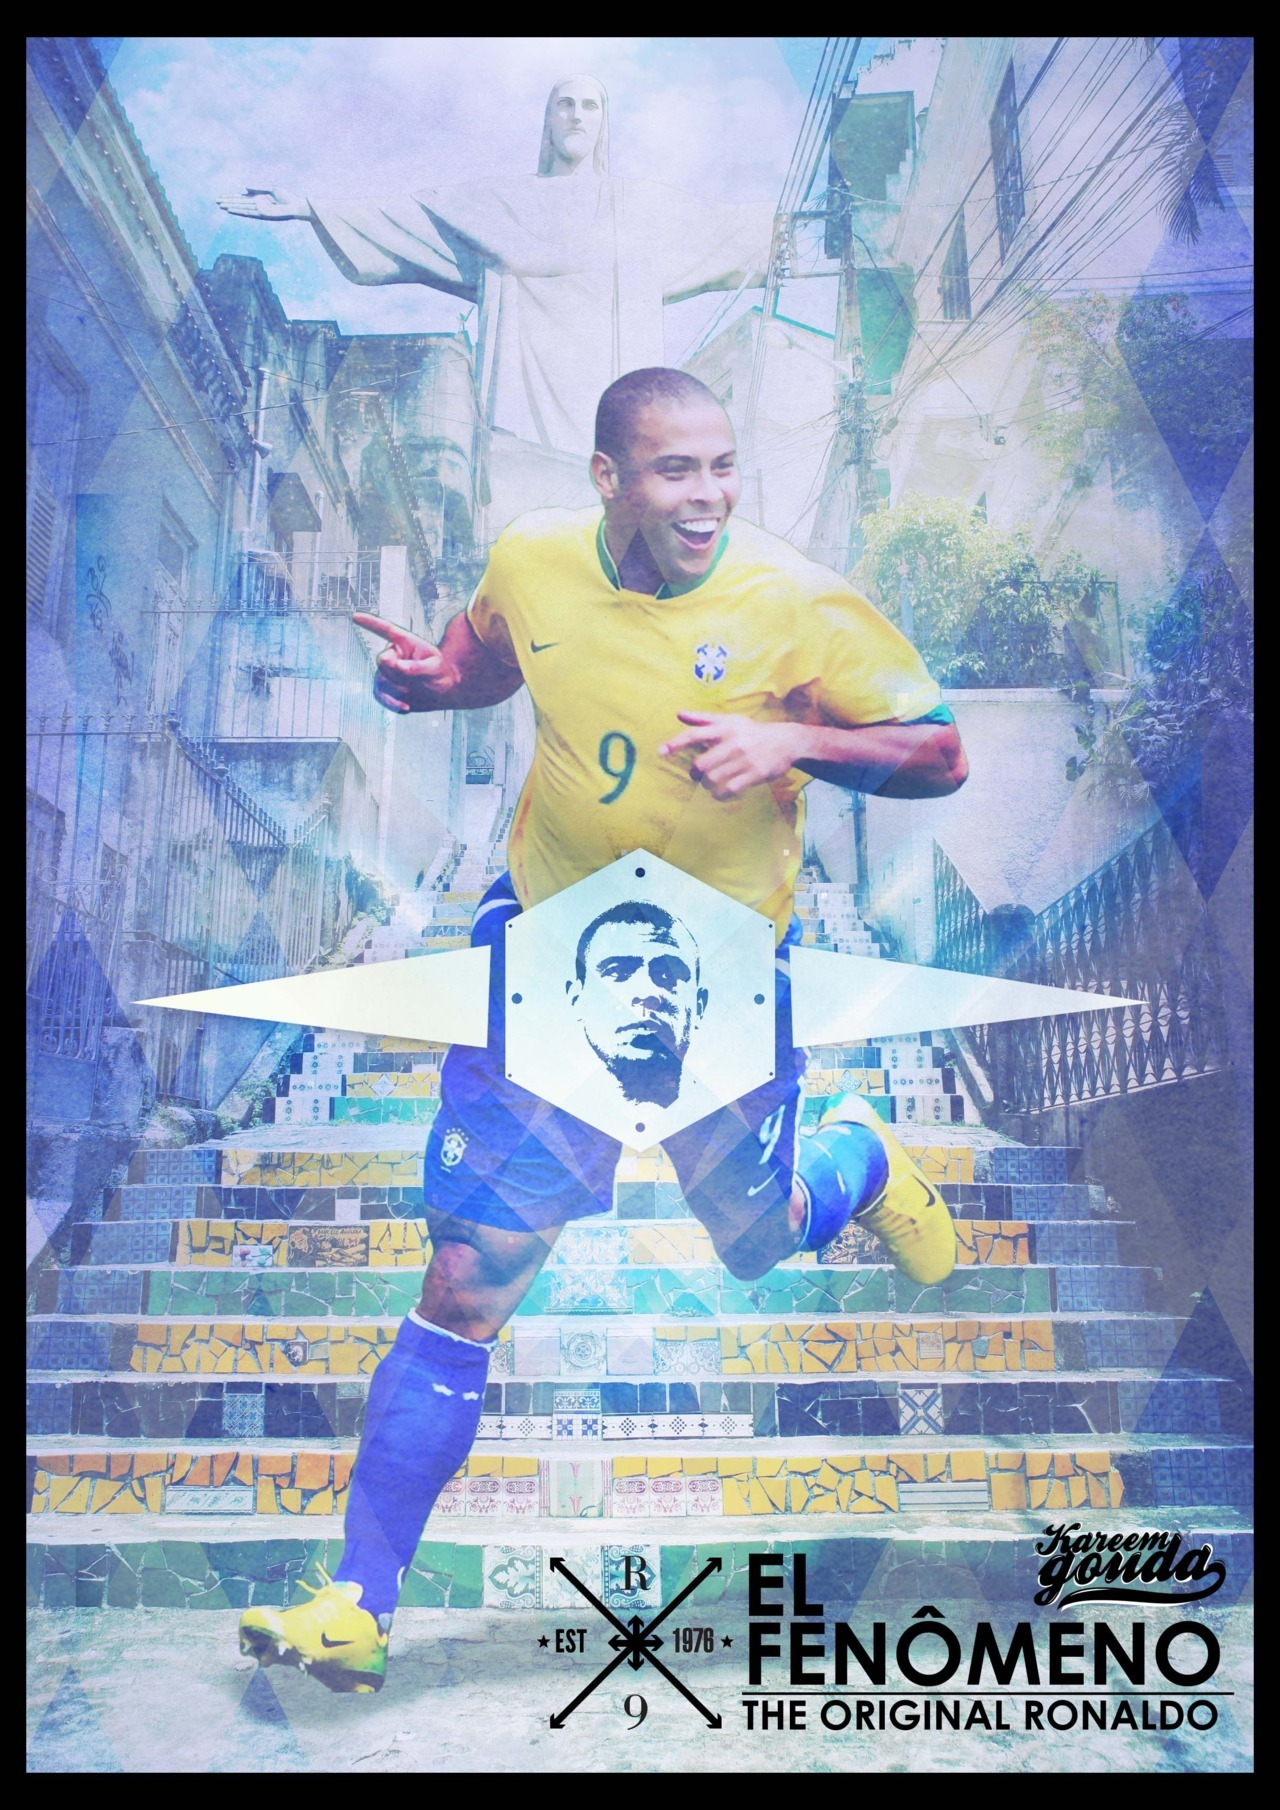 Poster tribute to one of the greatest football players in history; Ronaldo Luís Nazário de Lima (O' FENÔMENO) a.k.a. The Original Ronaldo.